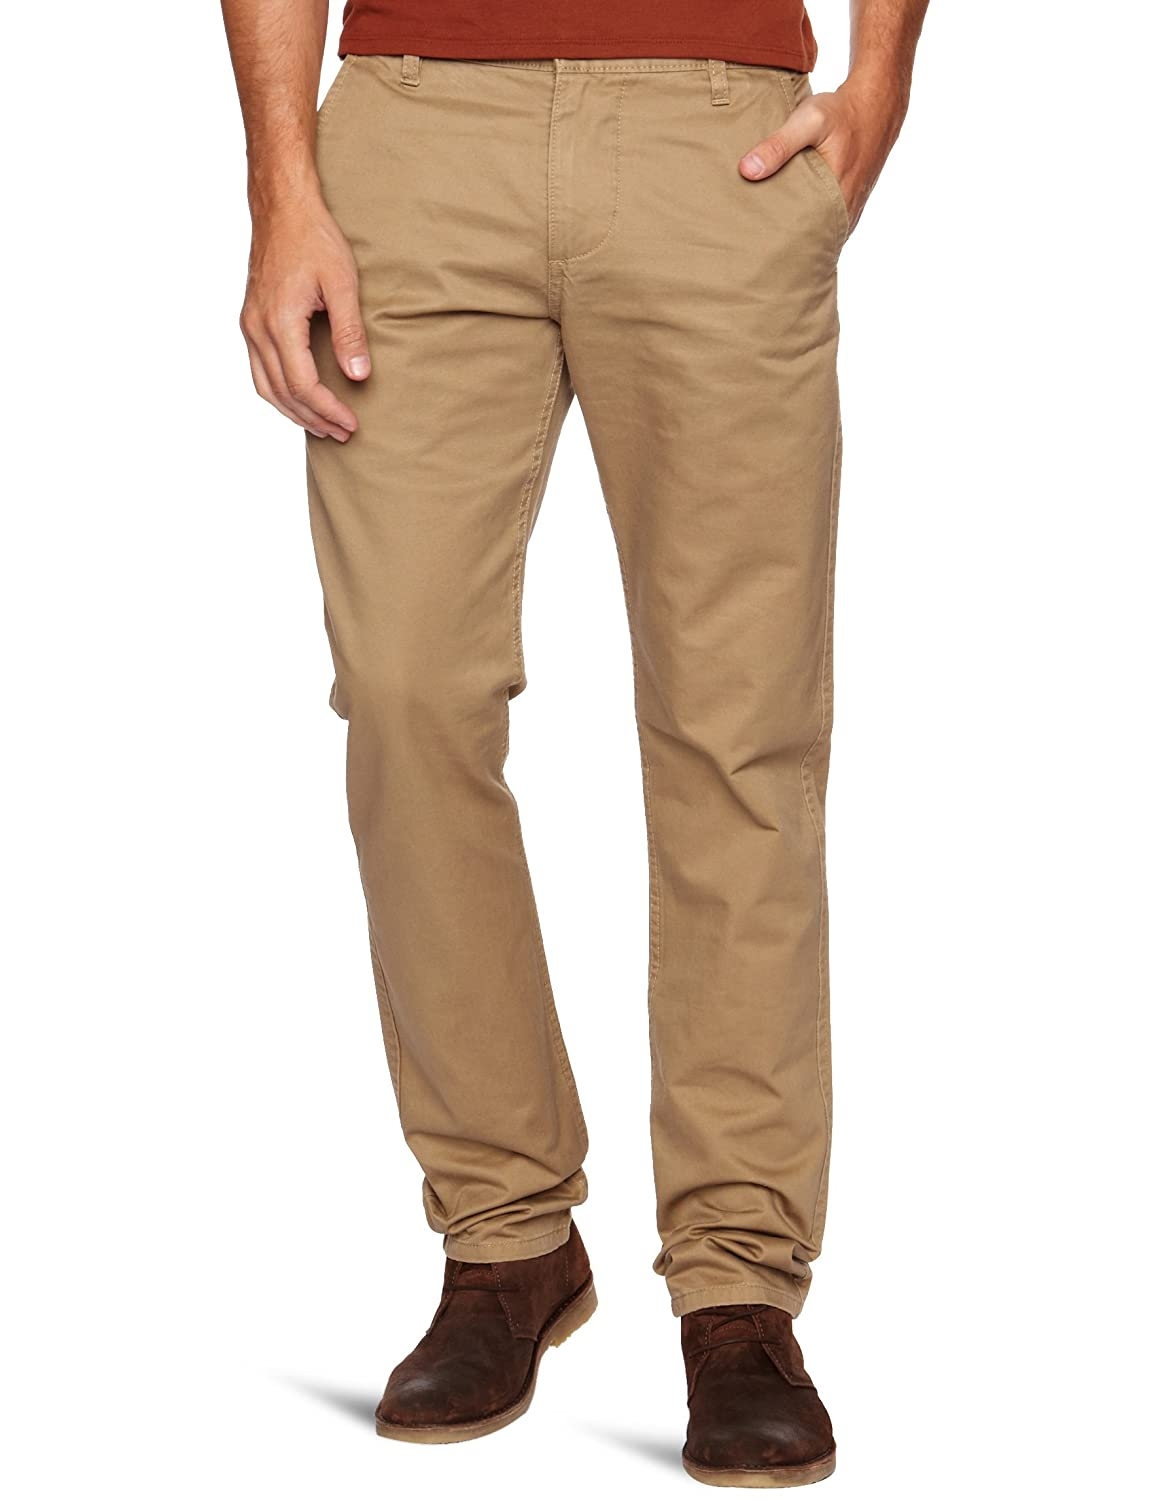 Dockers Hose Alpha Khaki Color